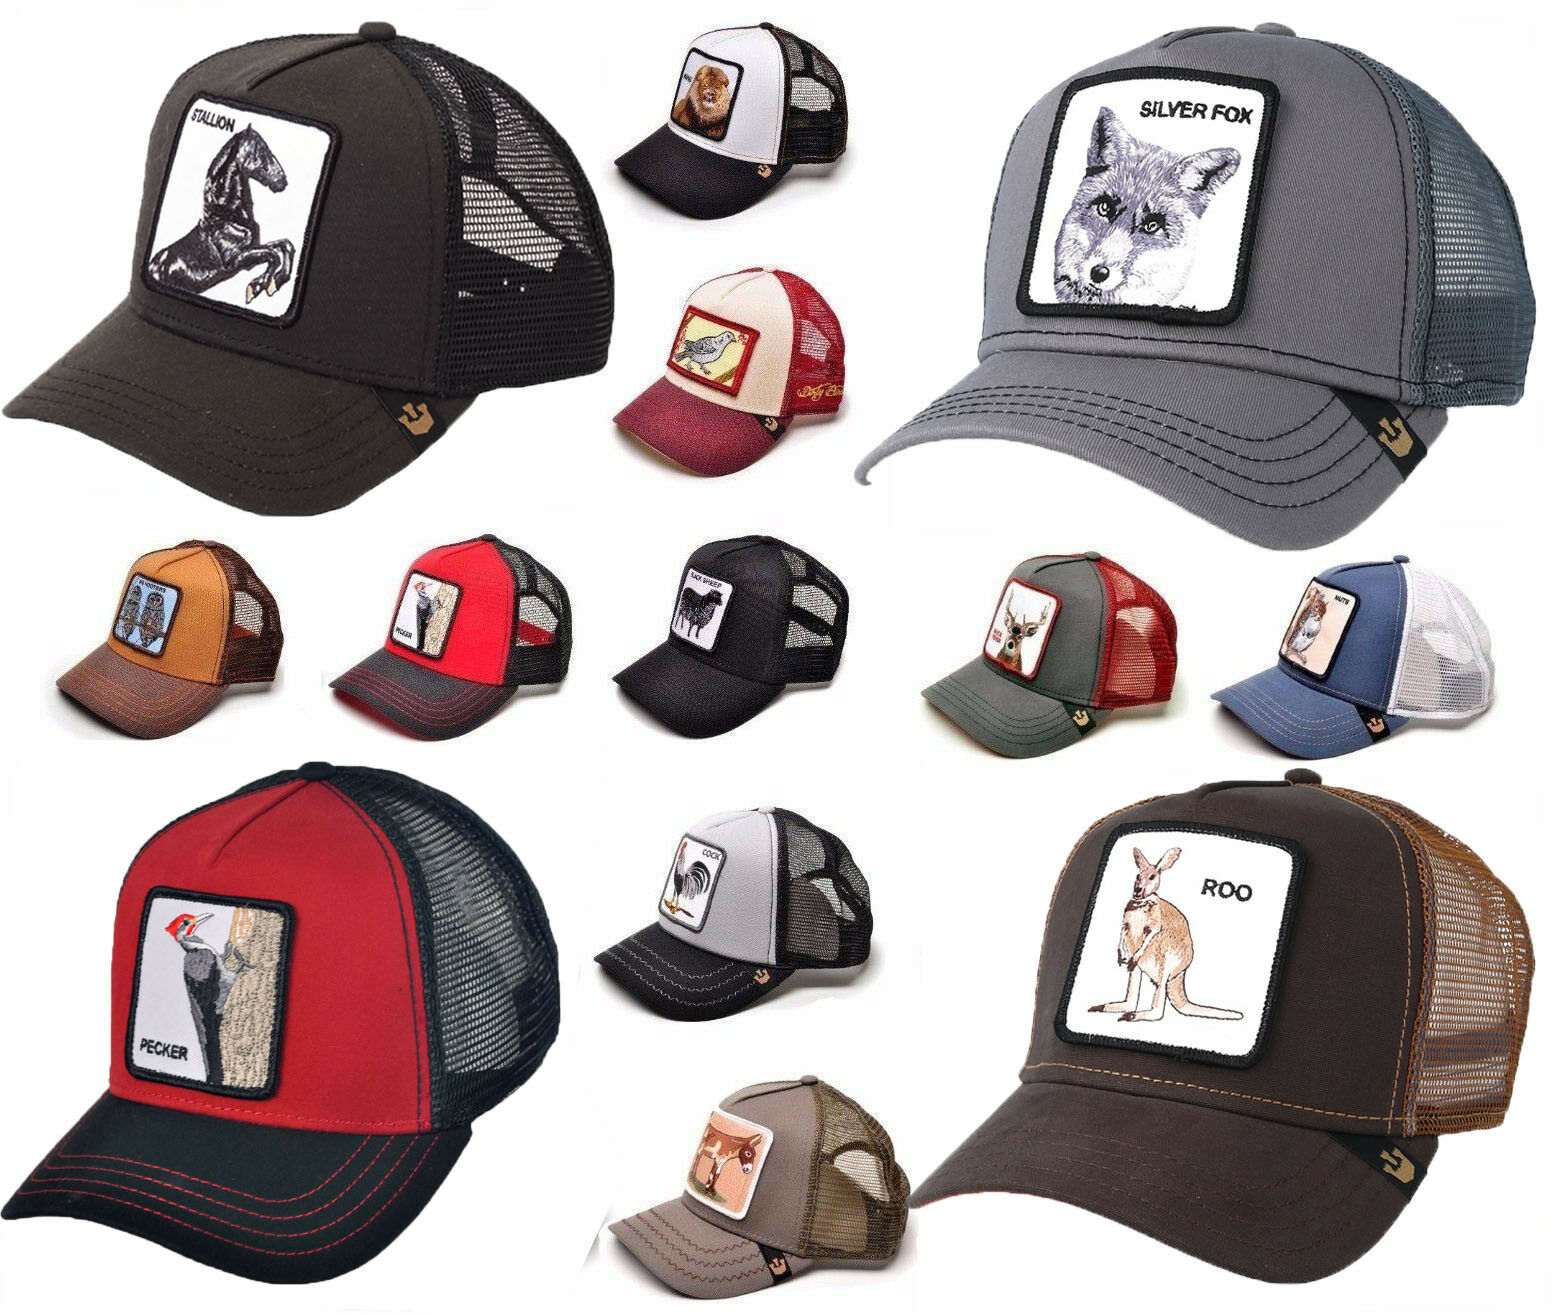 3c588ed9d11ea Goorin Bros Animal Farm Snapback Trucker Hat Cap Rooster Stallion Pecker  Lion